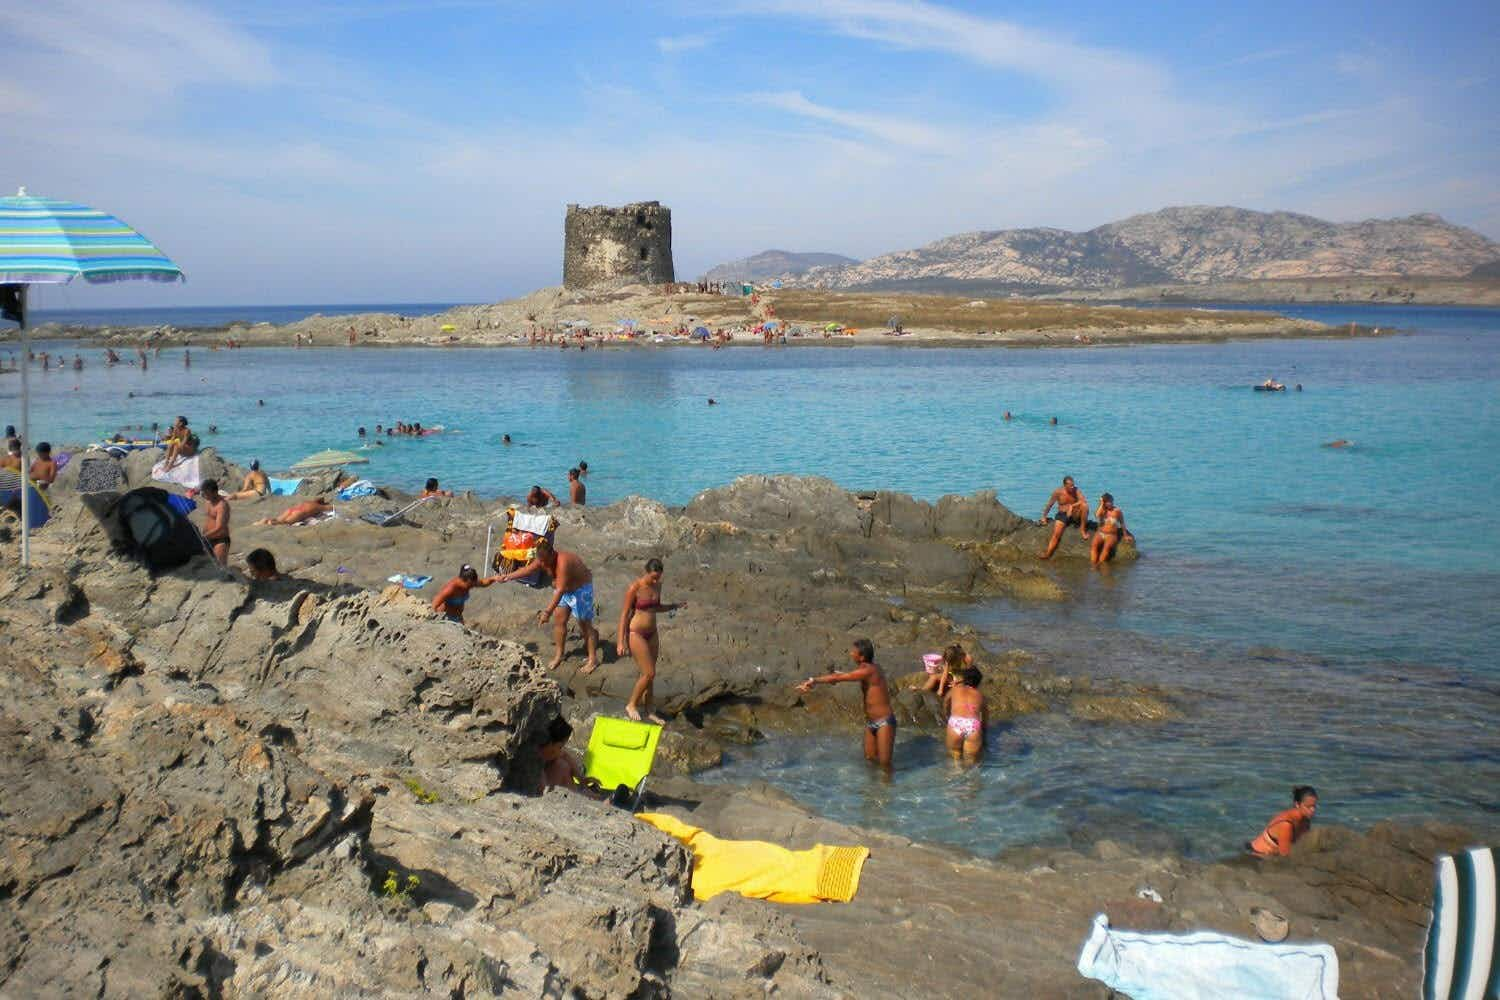 A town in Sardinia may ban towels to protect its popular sandy beach